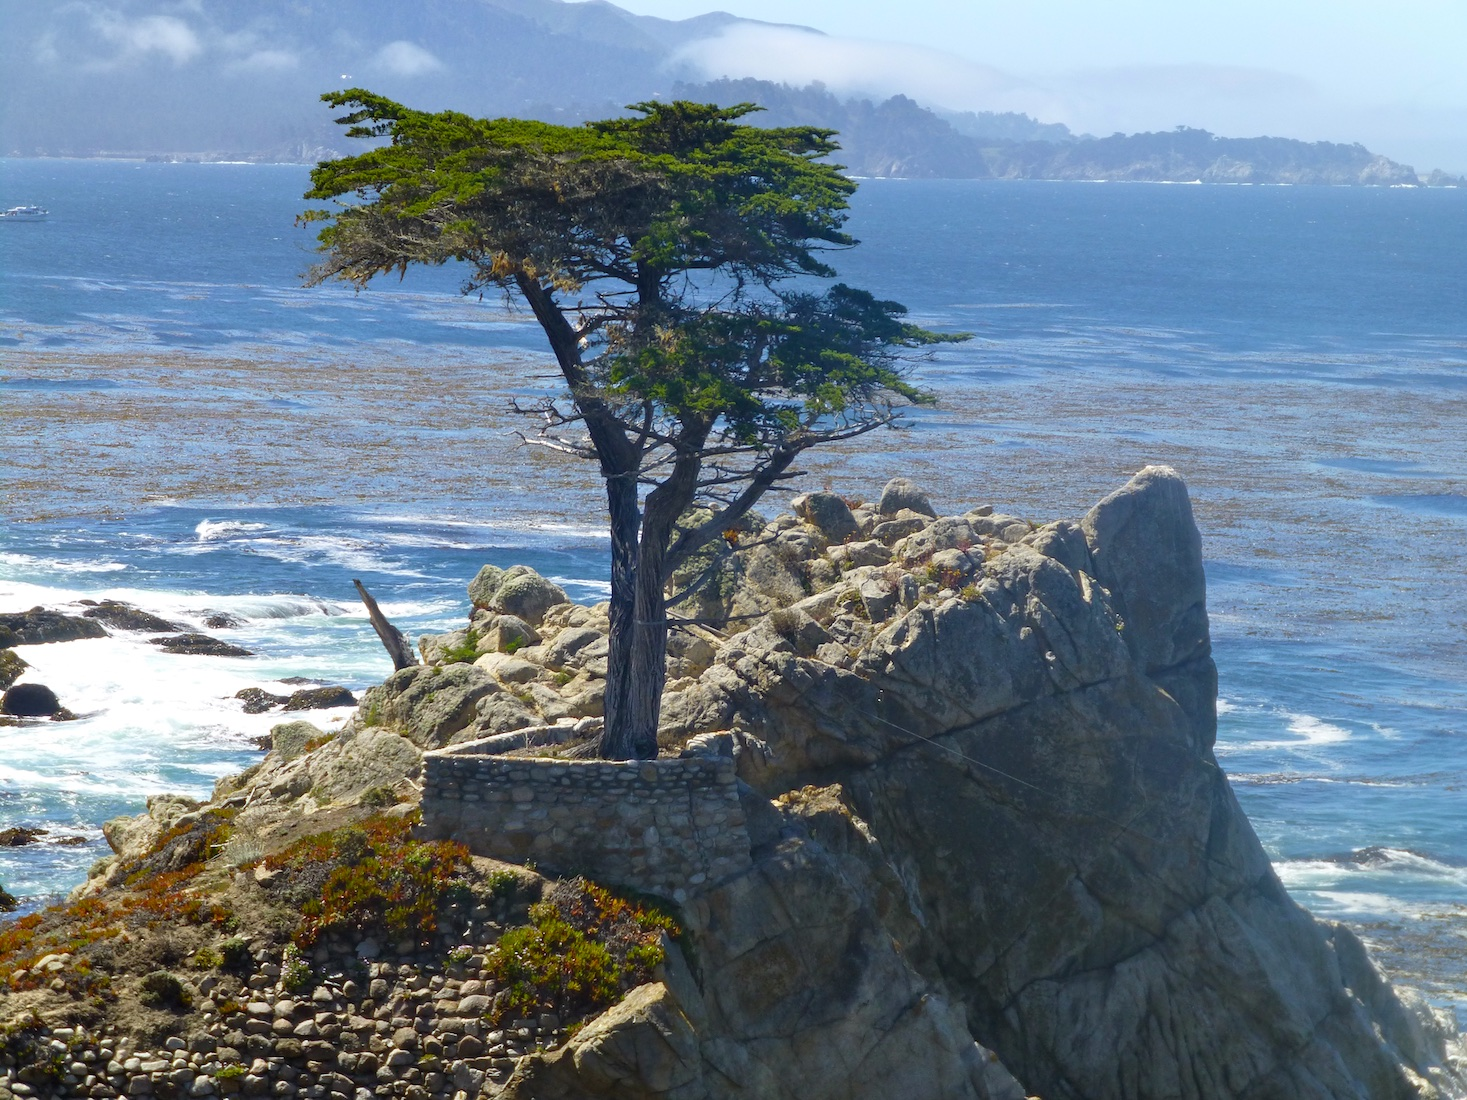 The Lone Cypress on 17 Mile Drive, California, USA